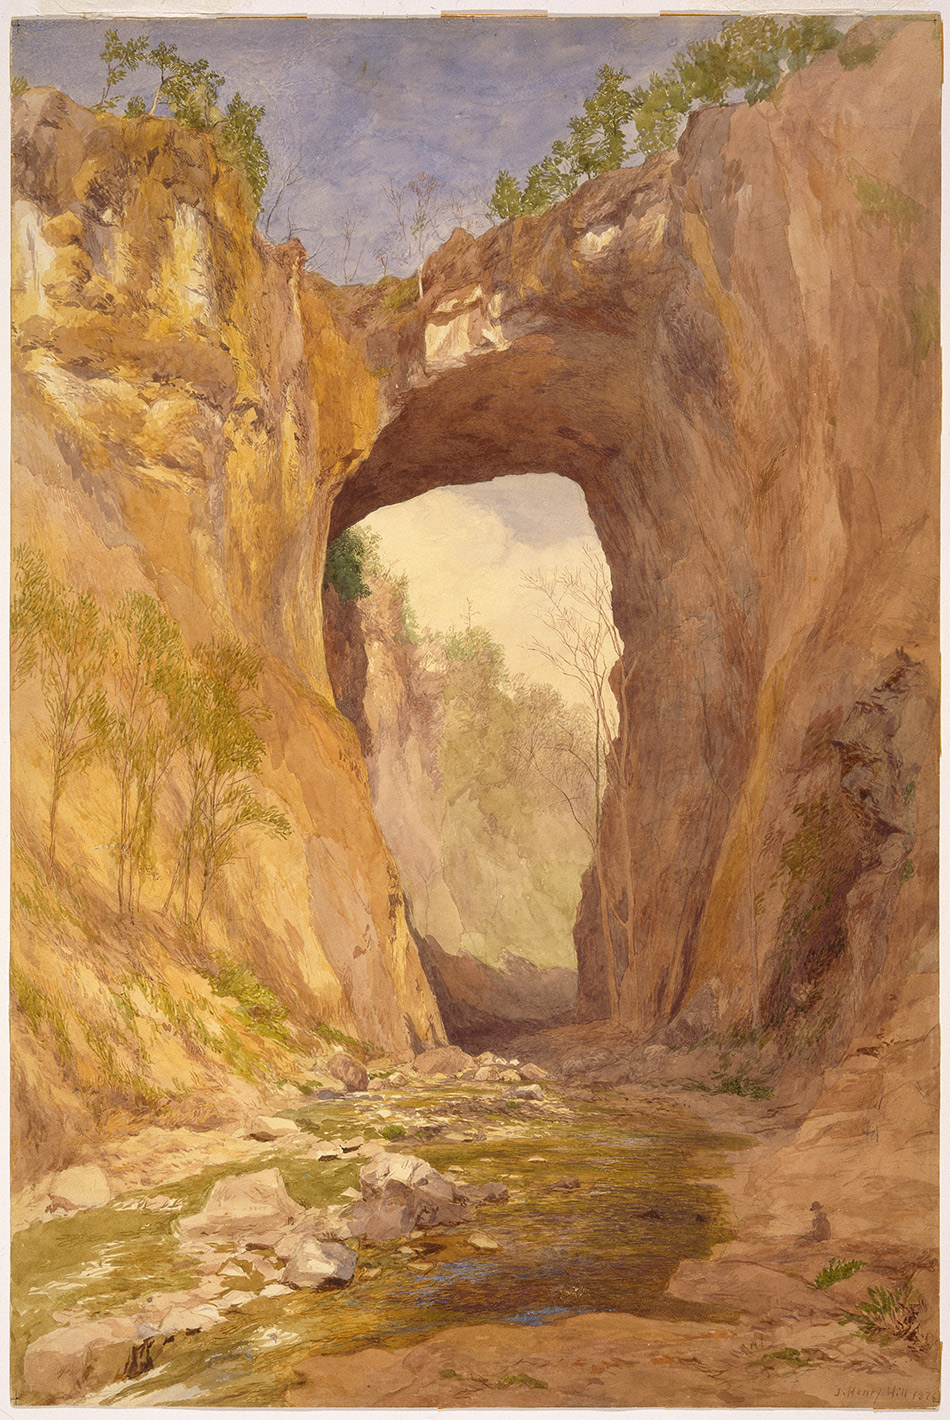 John-Henry-Hill_Natural-Bridge-Virginia-1876_4104-004_Brooklyn-Museum-New-York_950w